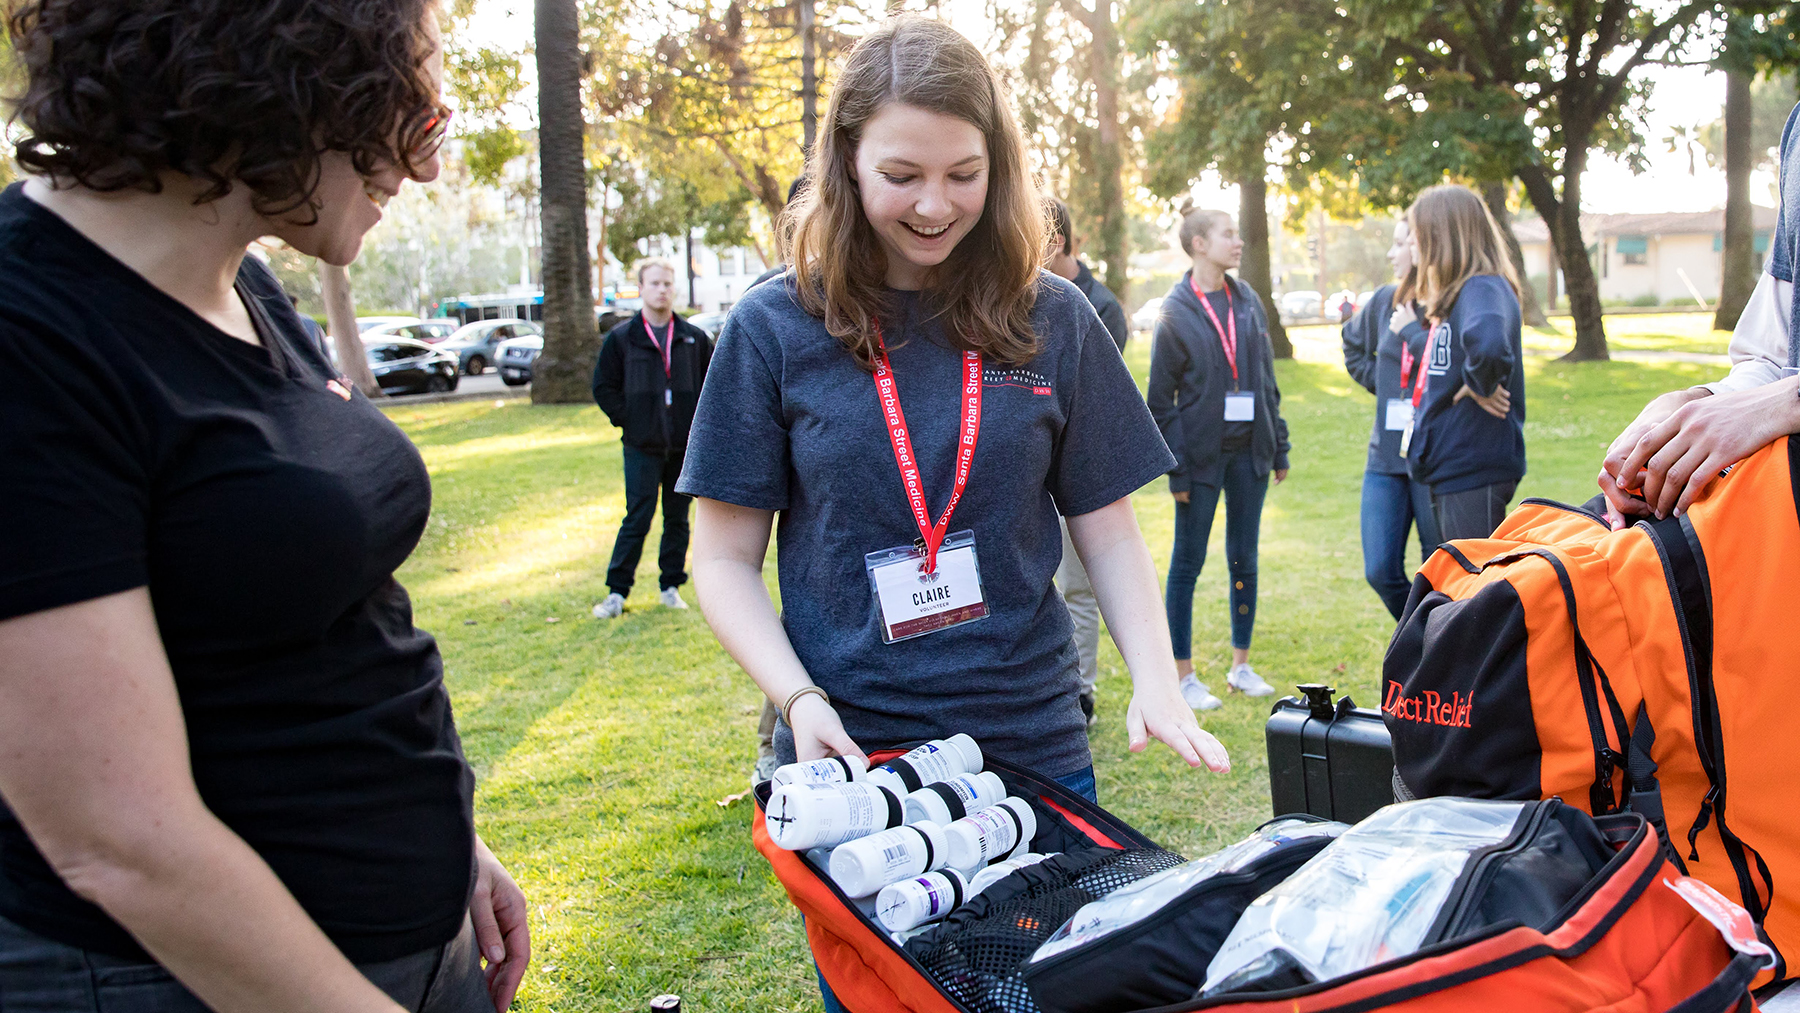 Doctors Without Walls volunteer Claire Sharp inventories the contents of an Emergency Medical Pack before coordinating outreach with patients, most of whom lack permanent housing. The packs are supplied by Direct Relief, then customized with frequently needed prescription medications. (Photo by Mark Semegen for Direct Relief)